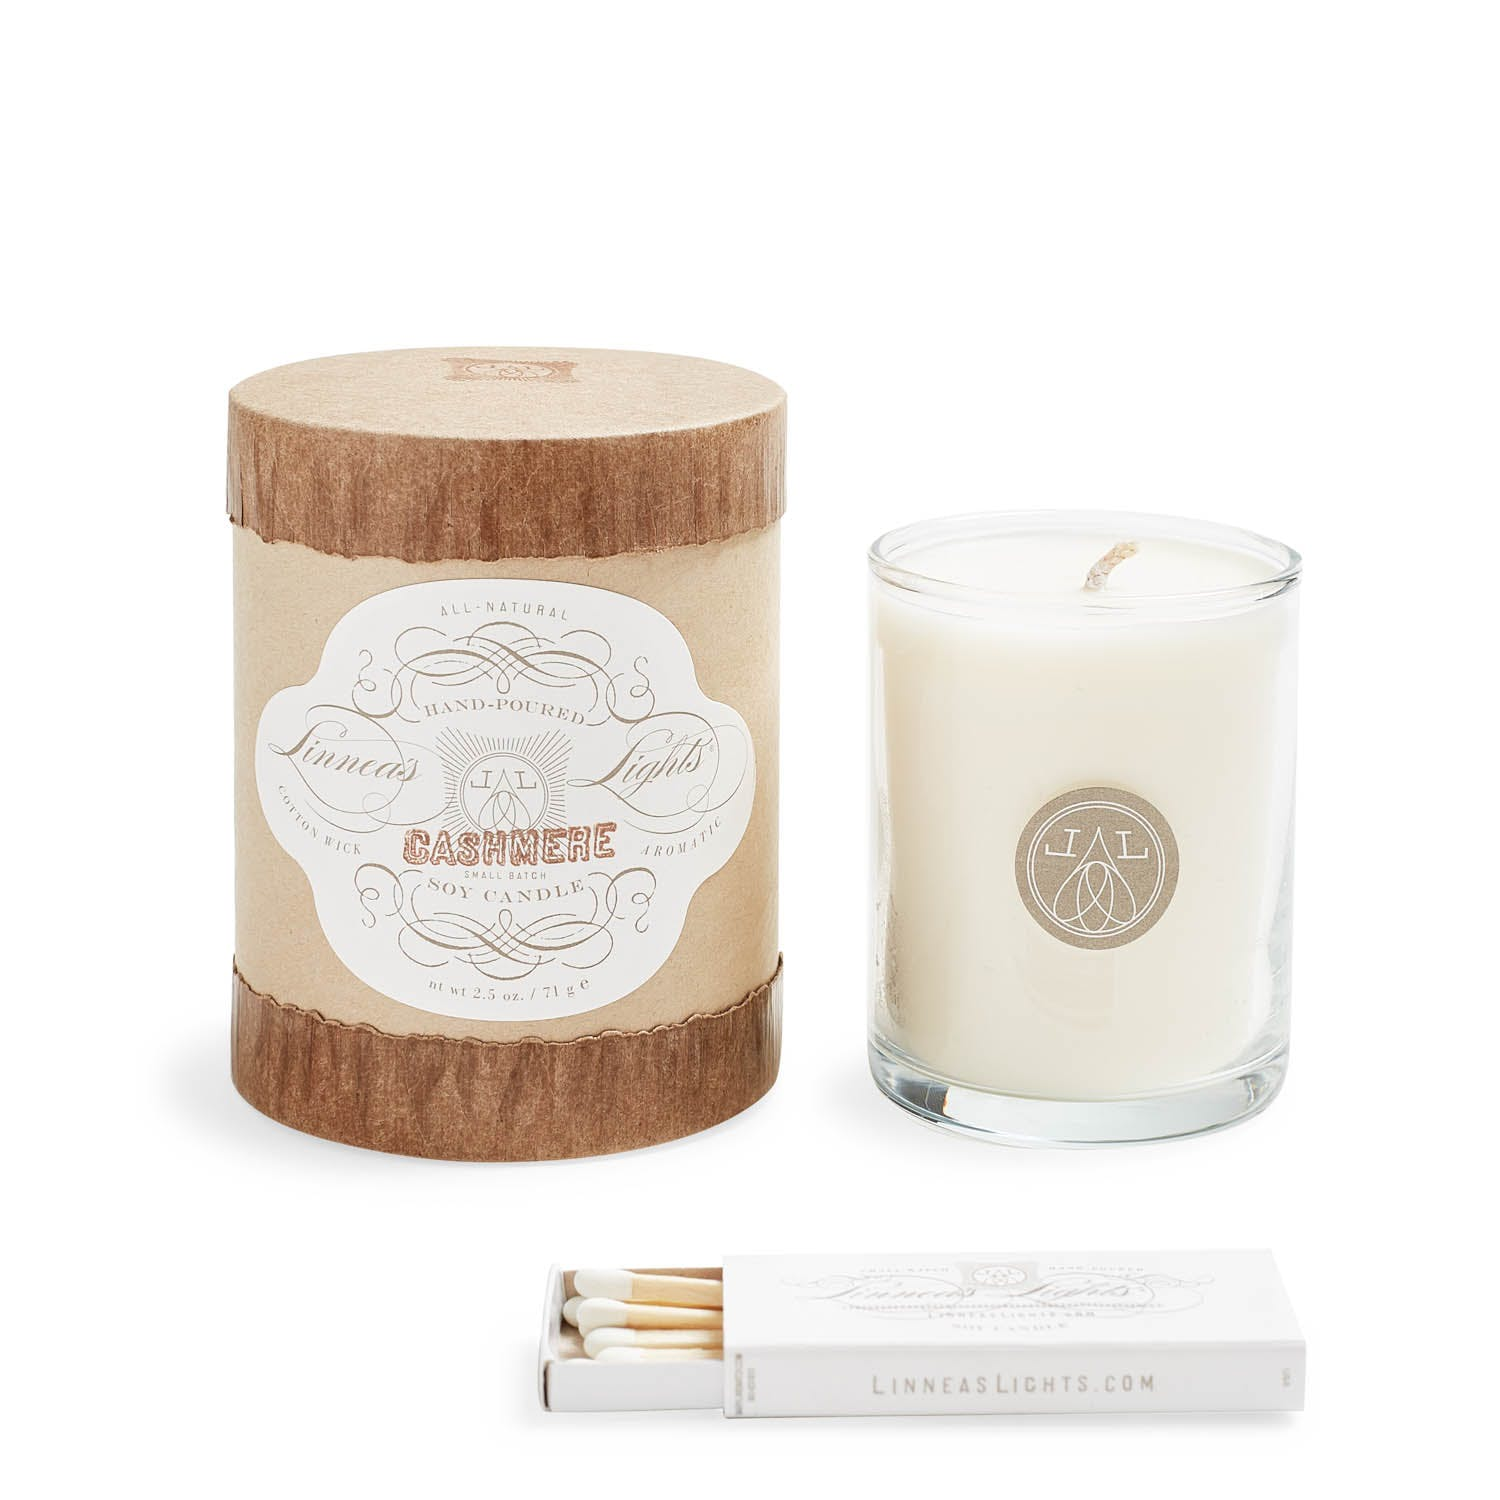 Linnea's Lights Cashmere Votive Candle